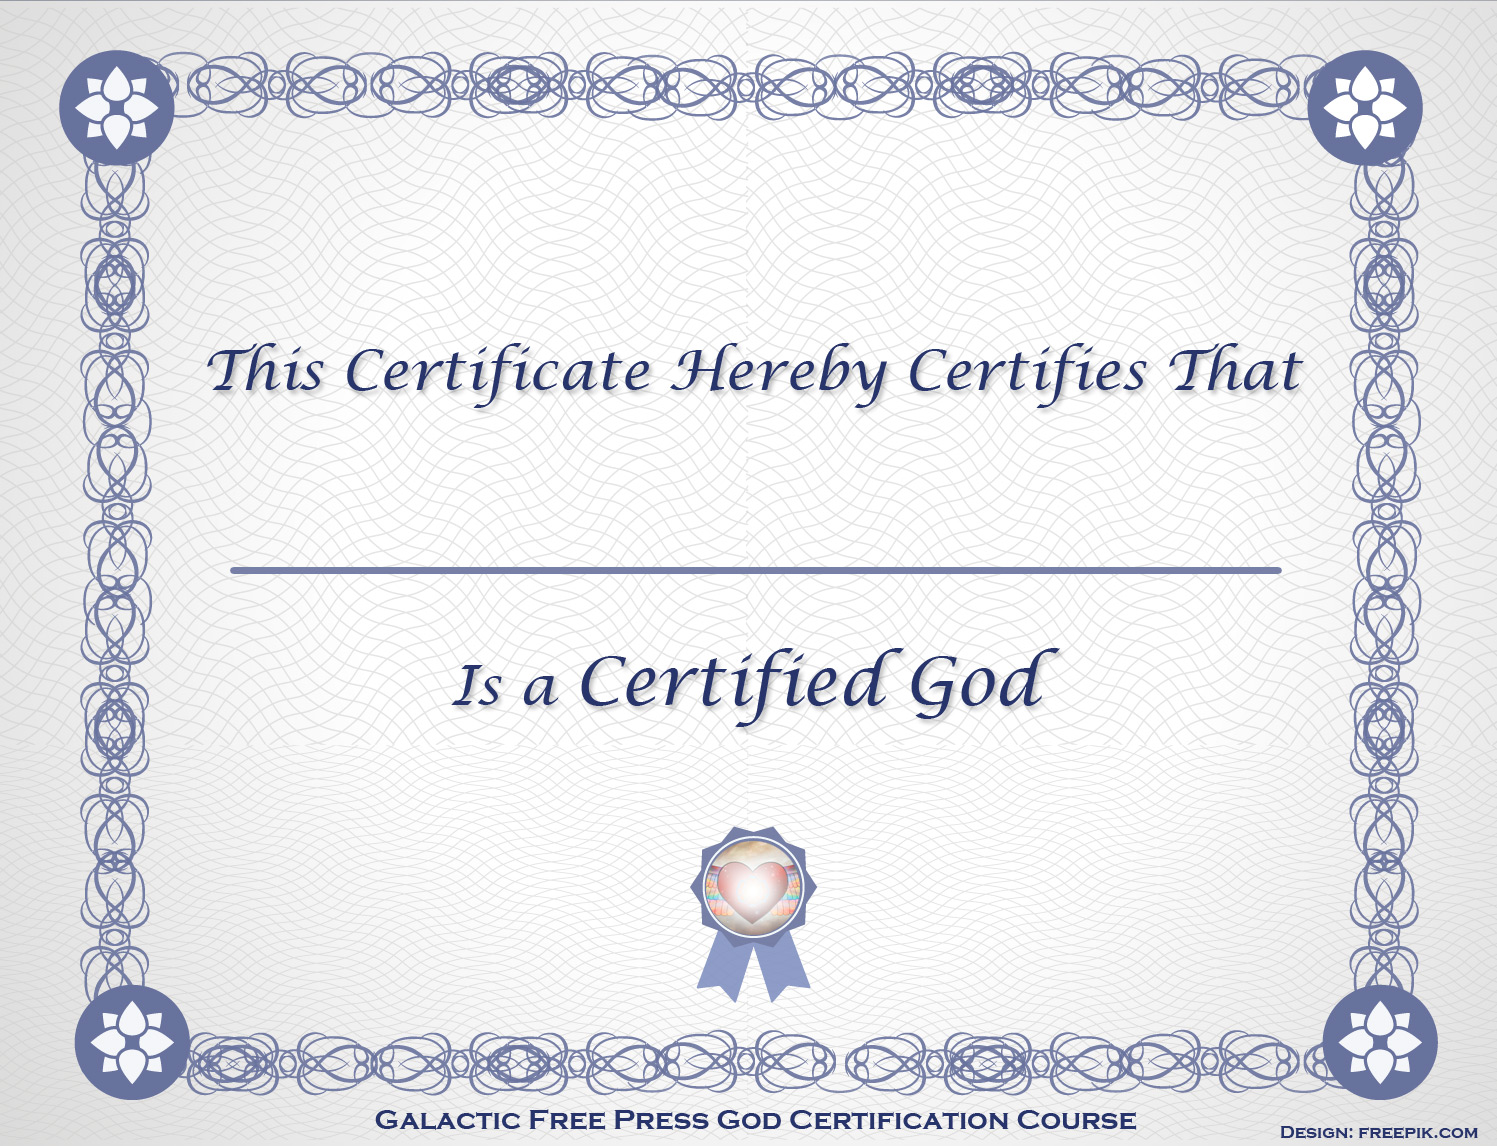 Galactic Free Press God Certification Course The Galactic Free Press